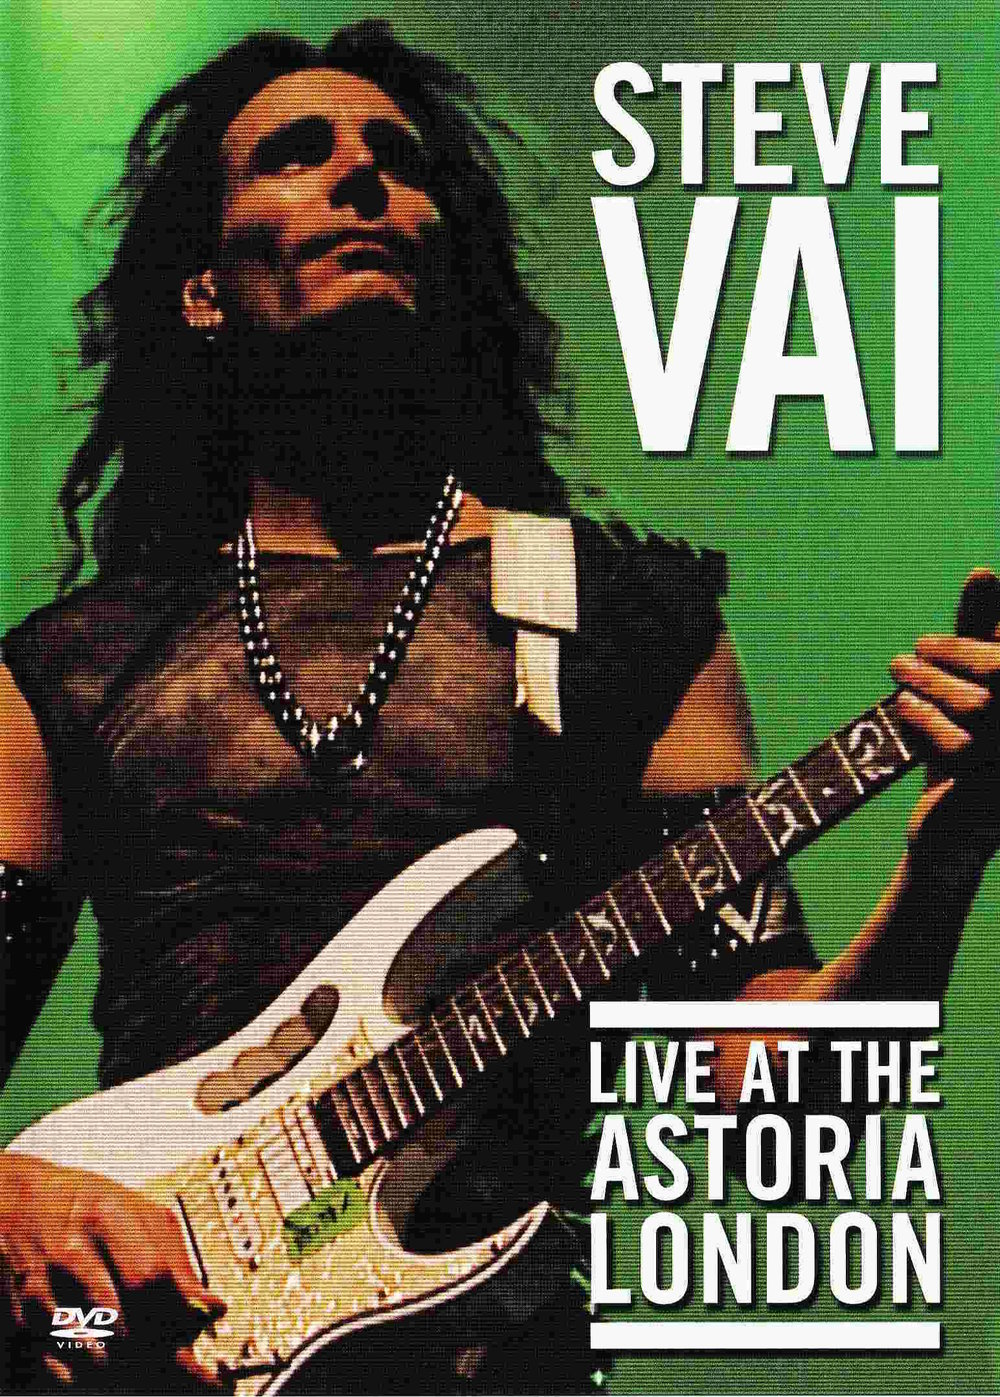 Steve Vai - Live At The Astoria London -vk-.jpg